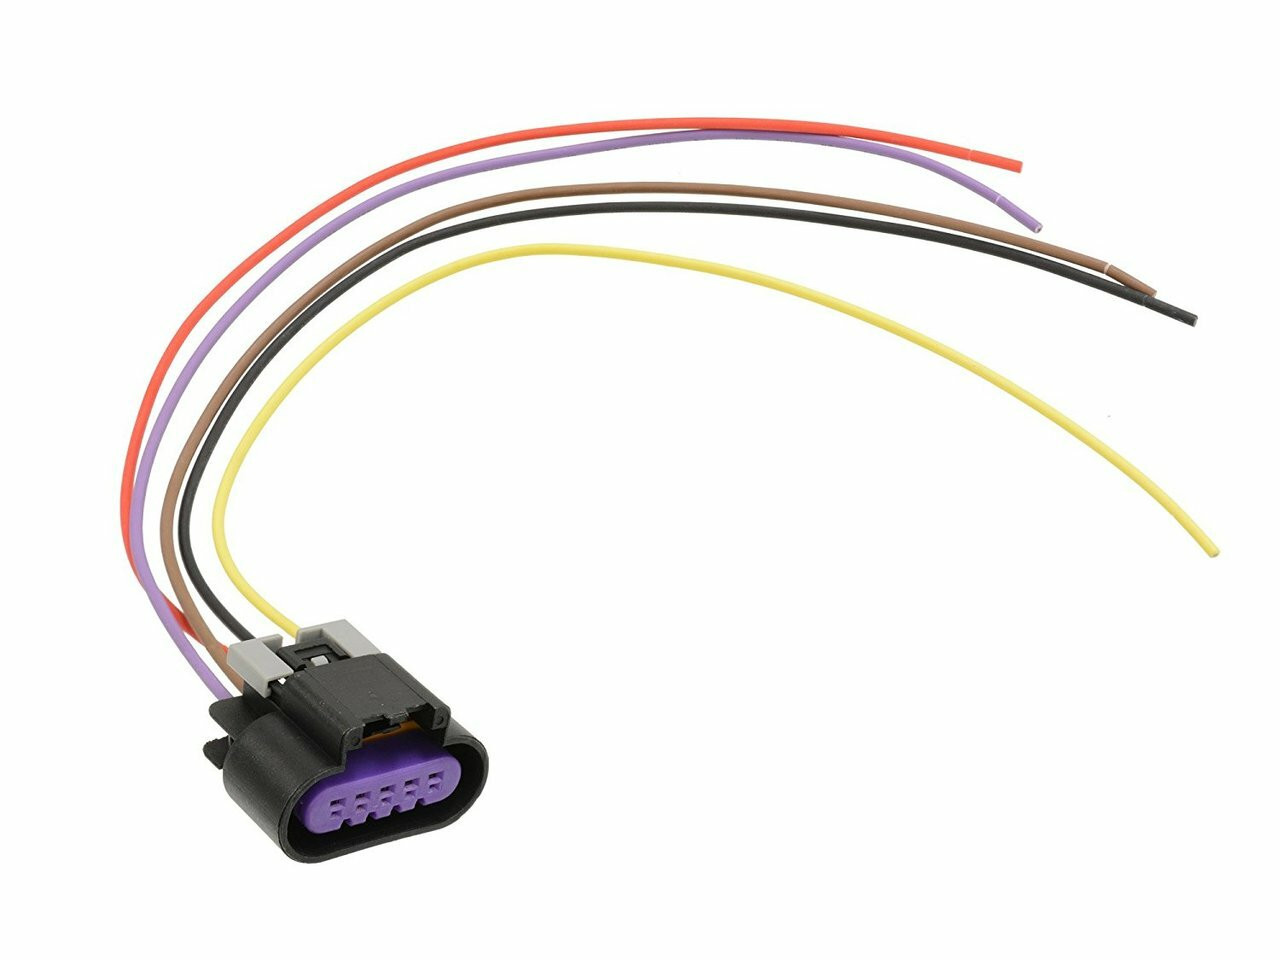 small resolution of 5 wire maf mass air flow sensor wire harness gm gmc cadillac hummer chevy buick saab